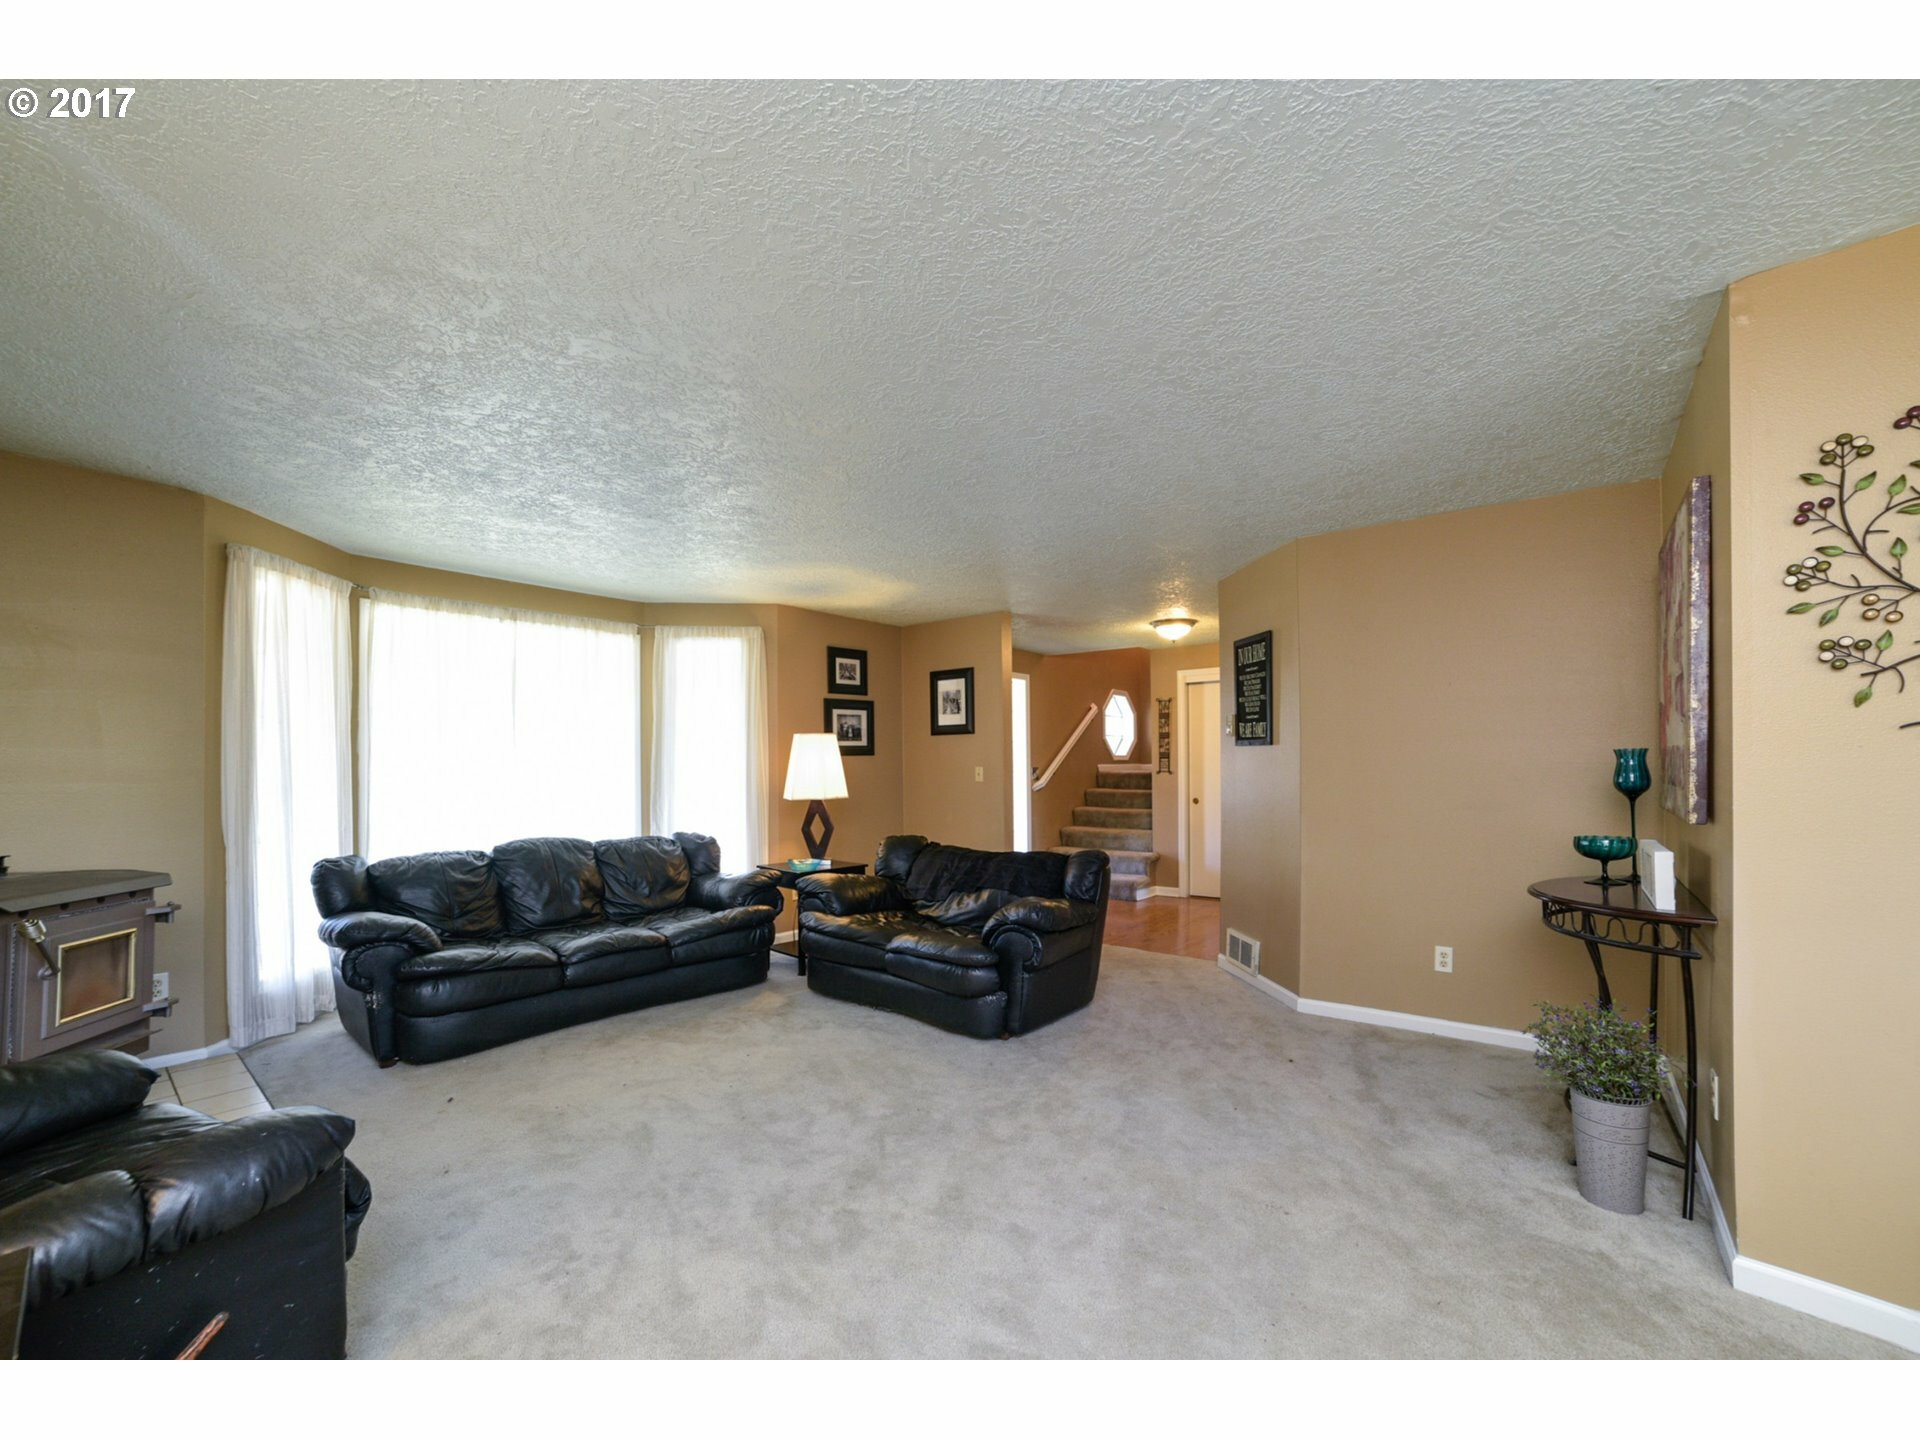 15401 Se Meadow Park Dr, Vancouver, WA - USA (photo 3)